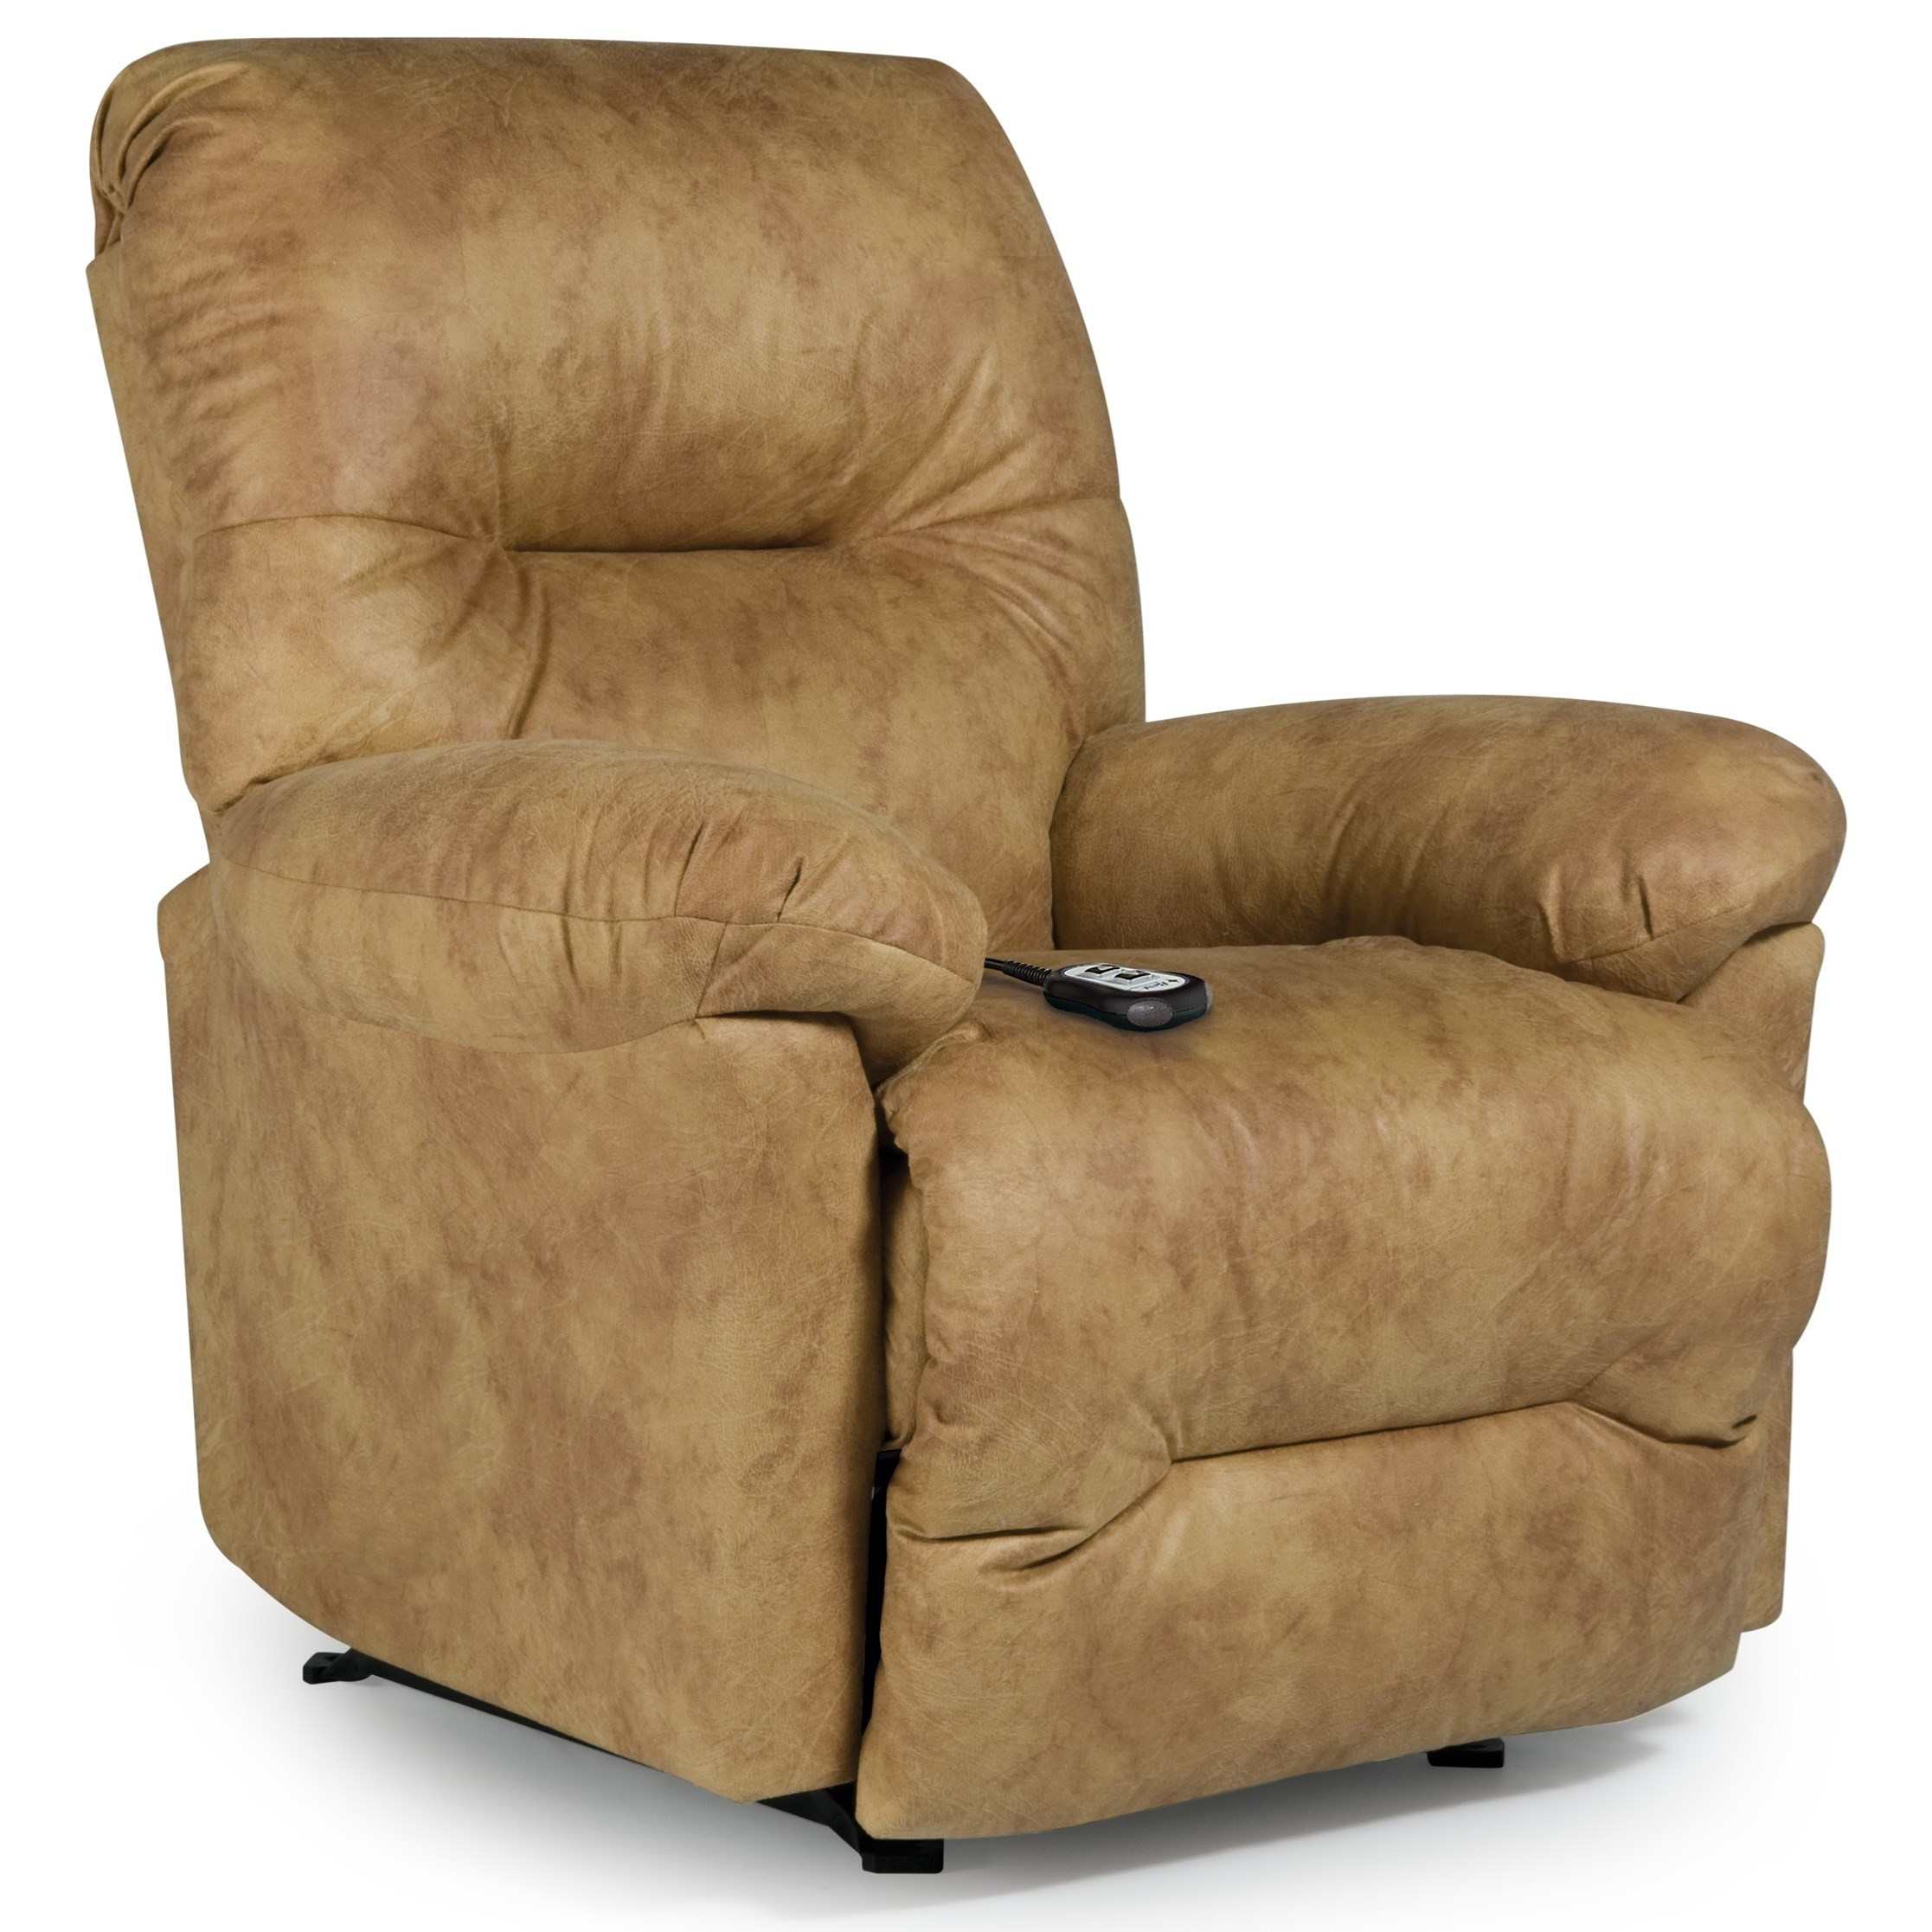 Best Home Furnishings Recliners - Medium Rodney Power Rocker Recliner - Item Number: 6NP27